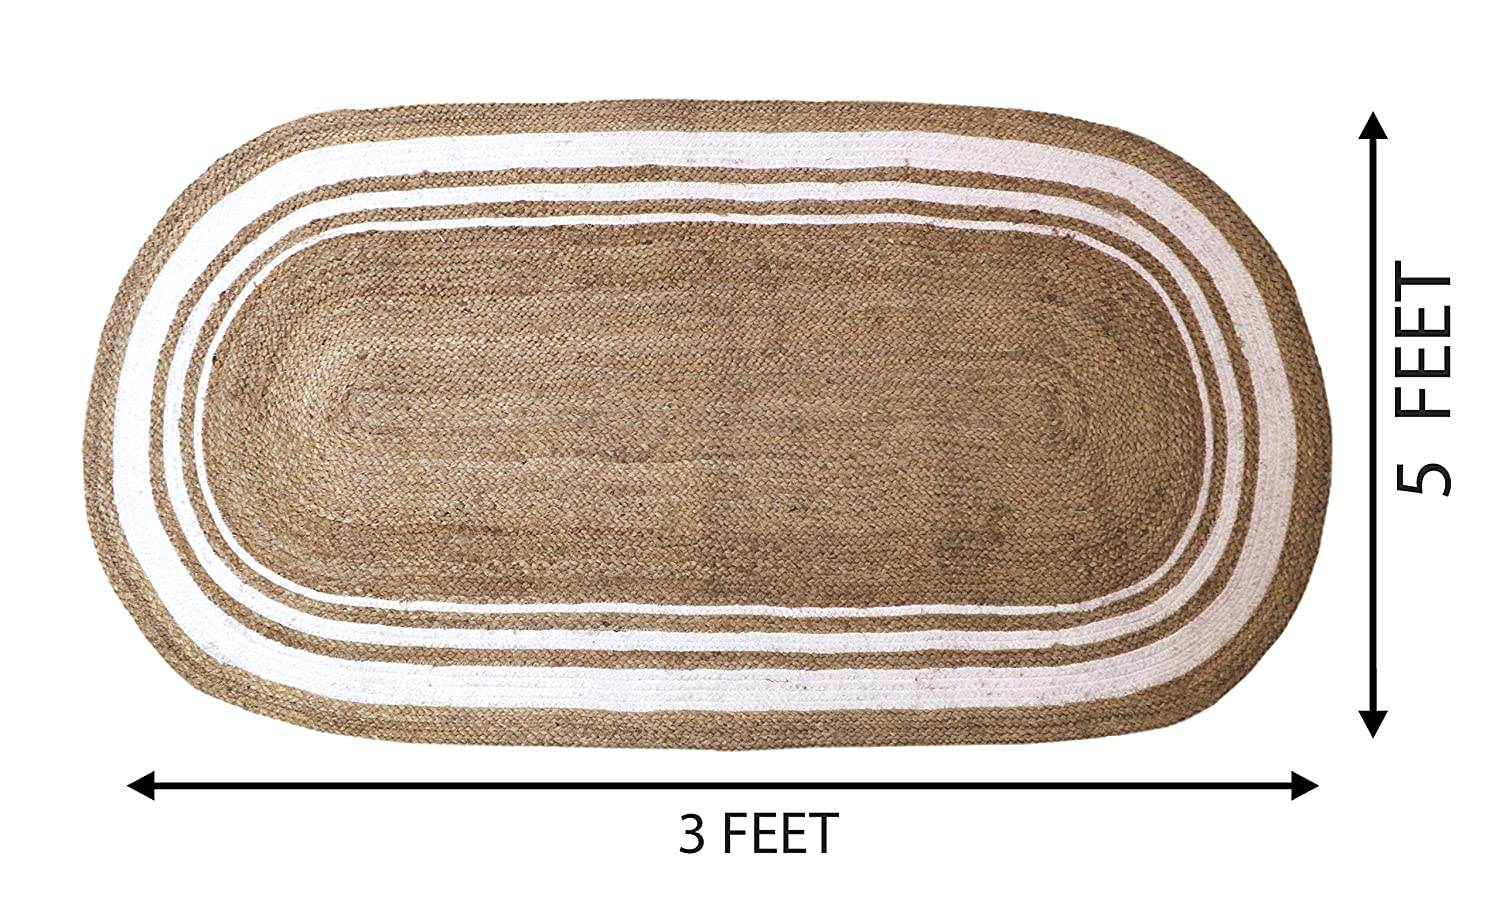 Detec™ Cotton and Jute Floor Rug - White and Beige Color